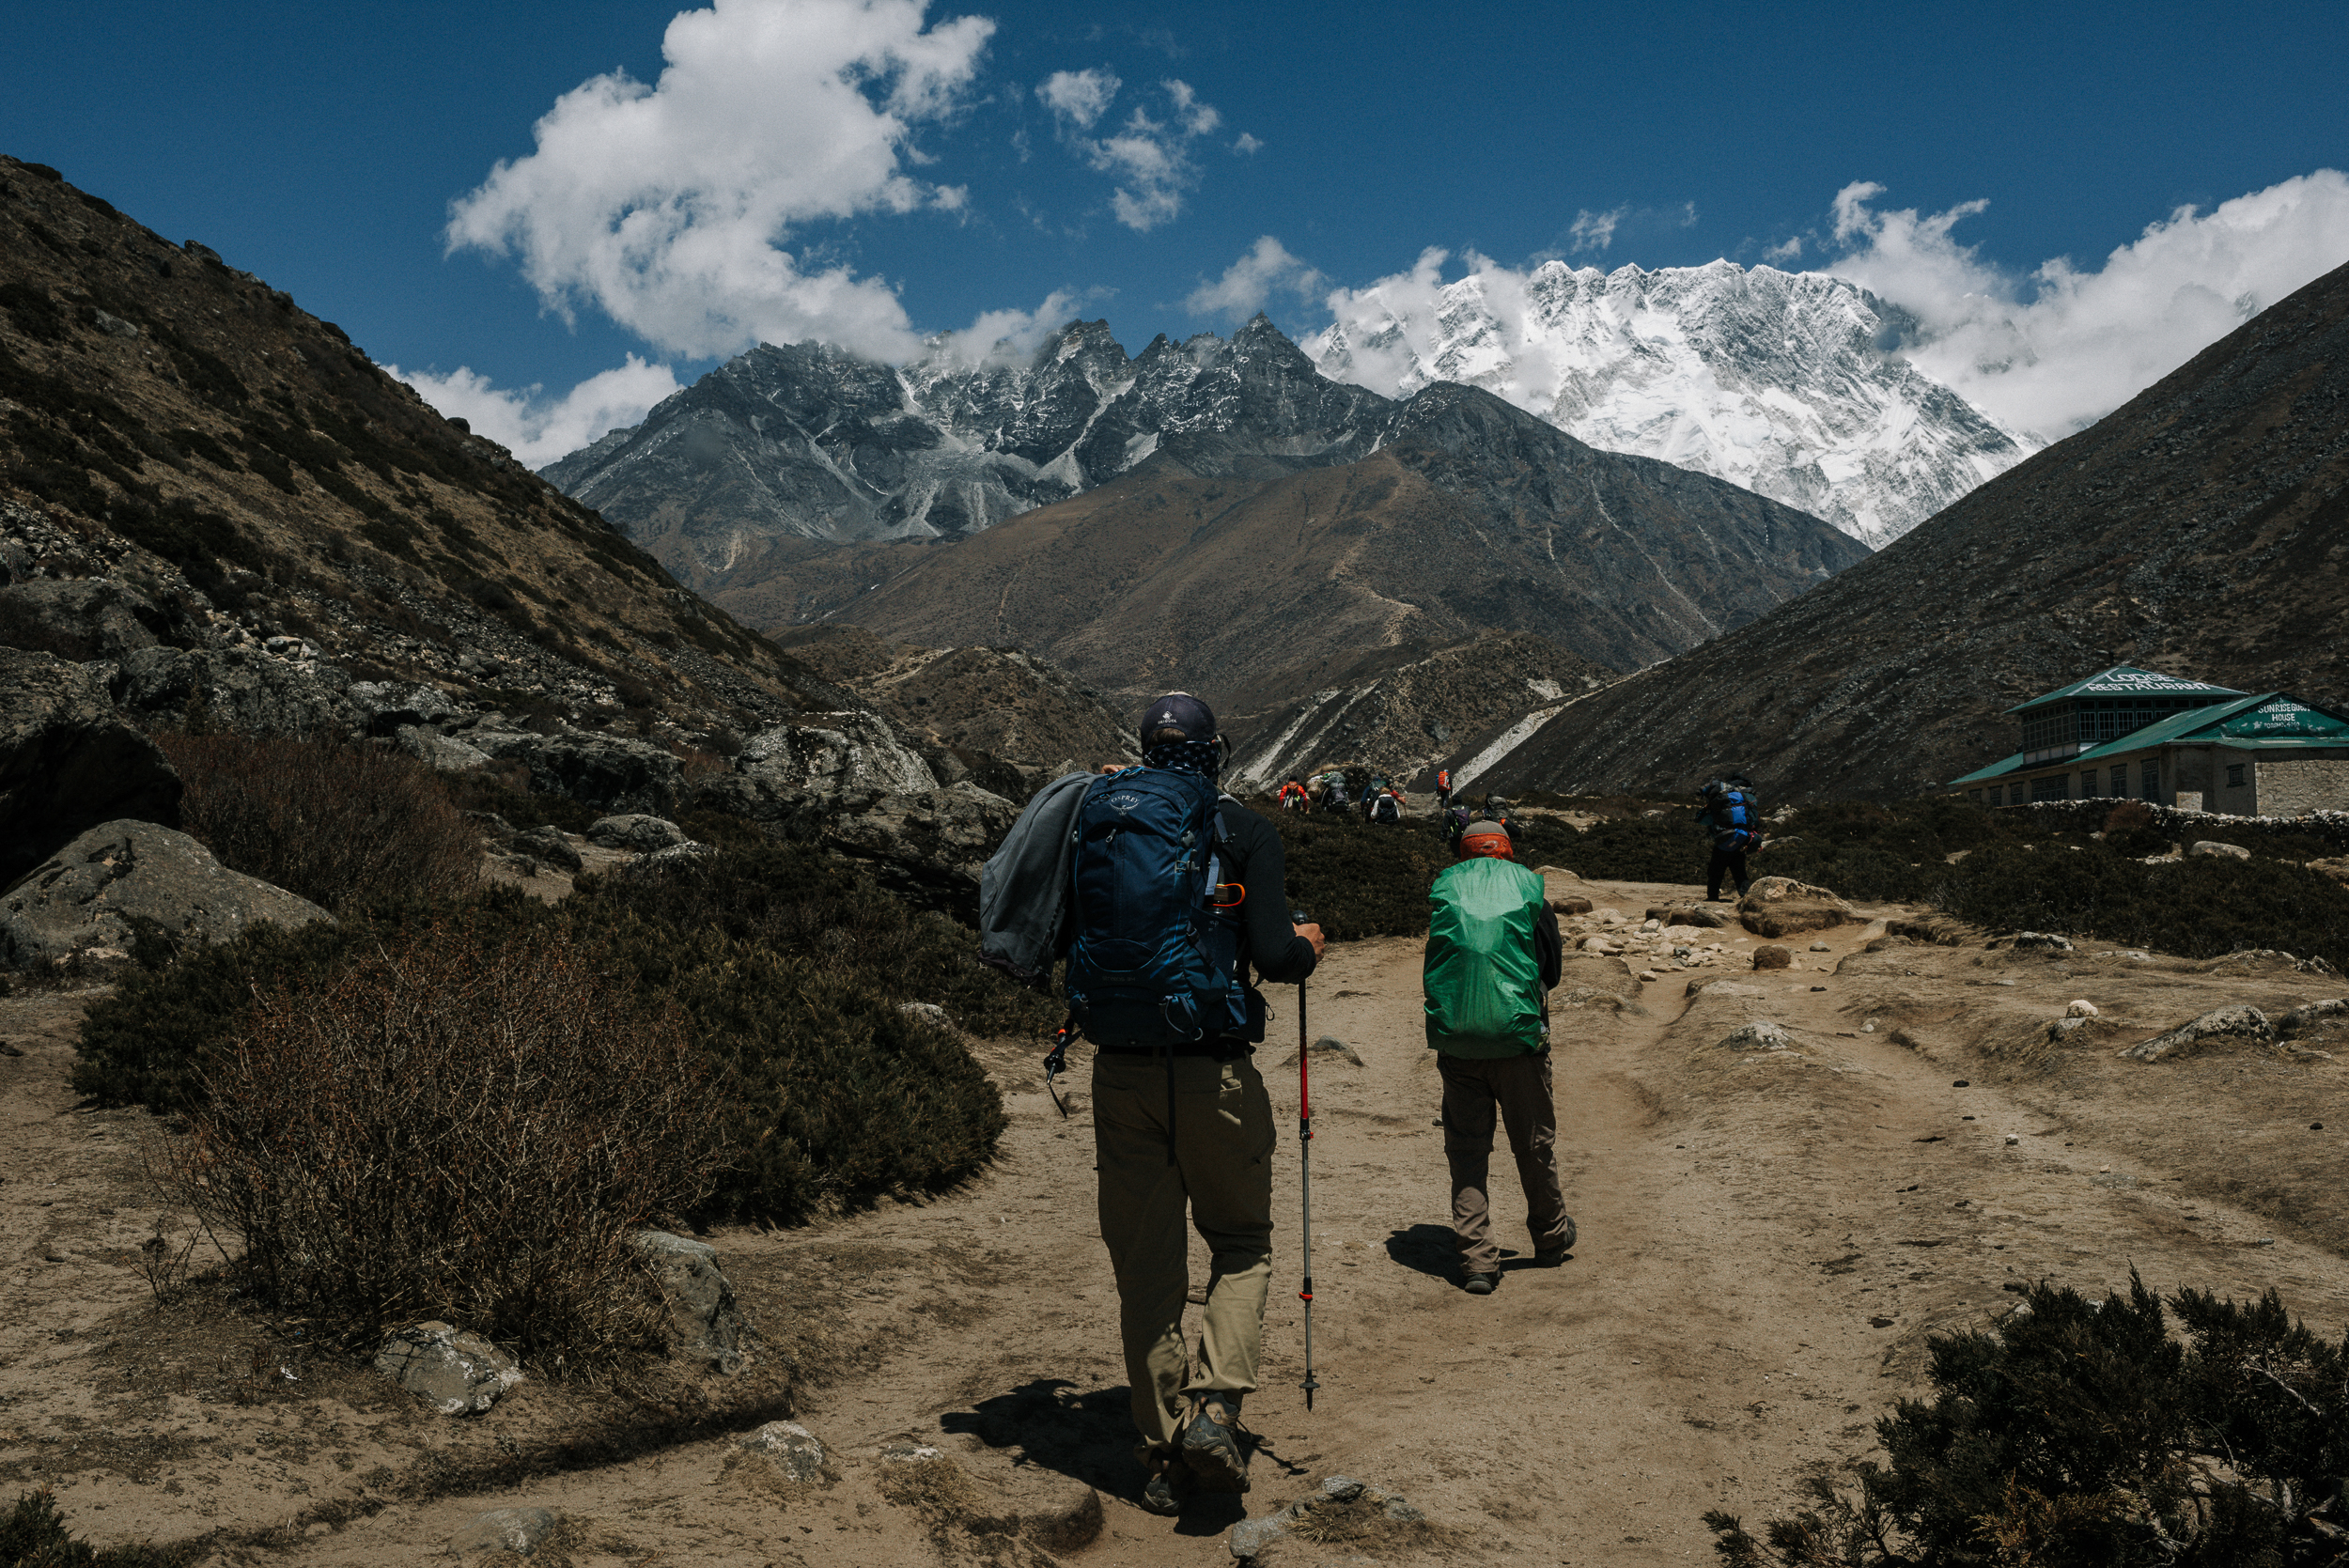 Nepal_EverestBaseCamp_2019_TaraShupe_Photography_DSC_3902.jpg